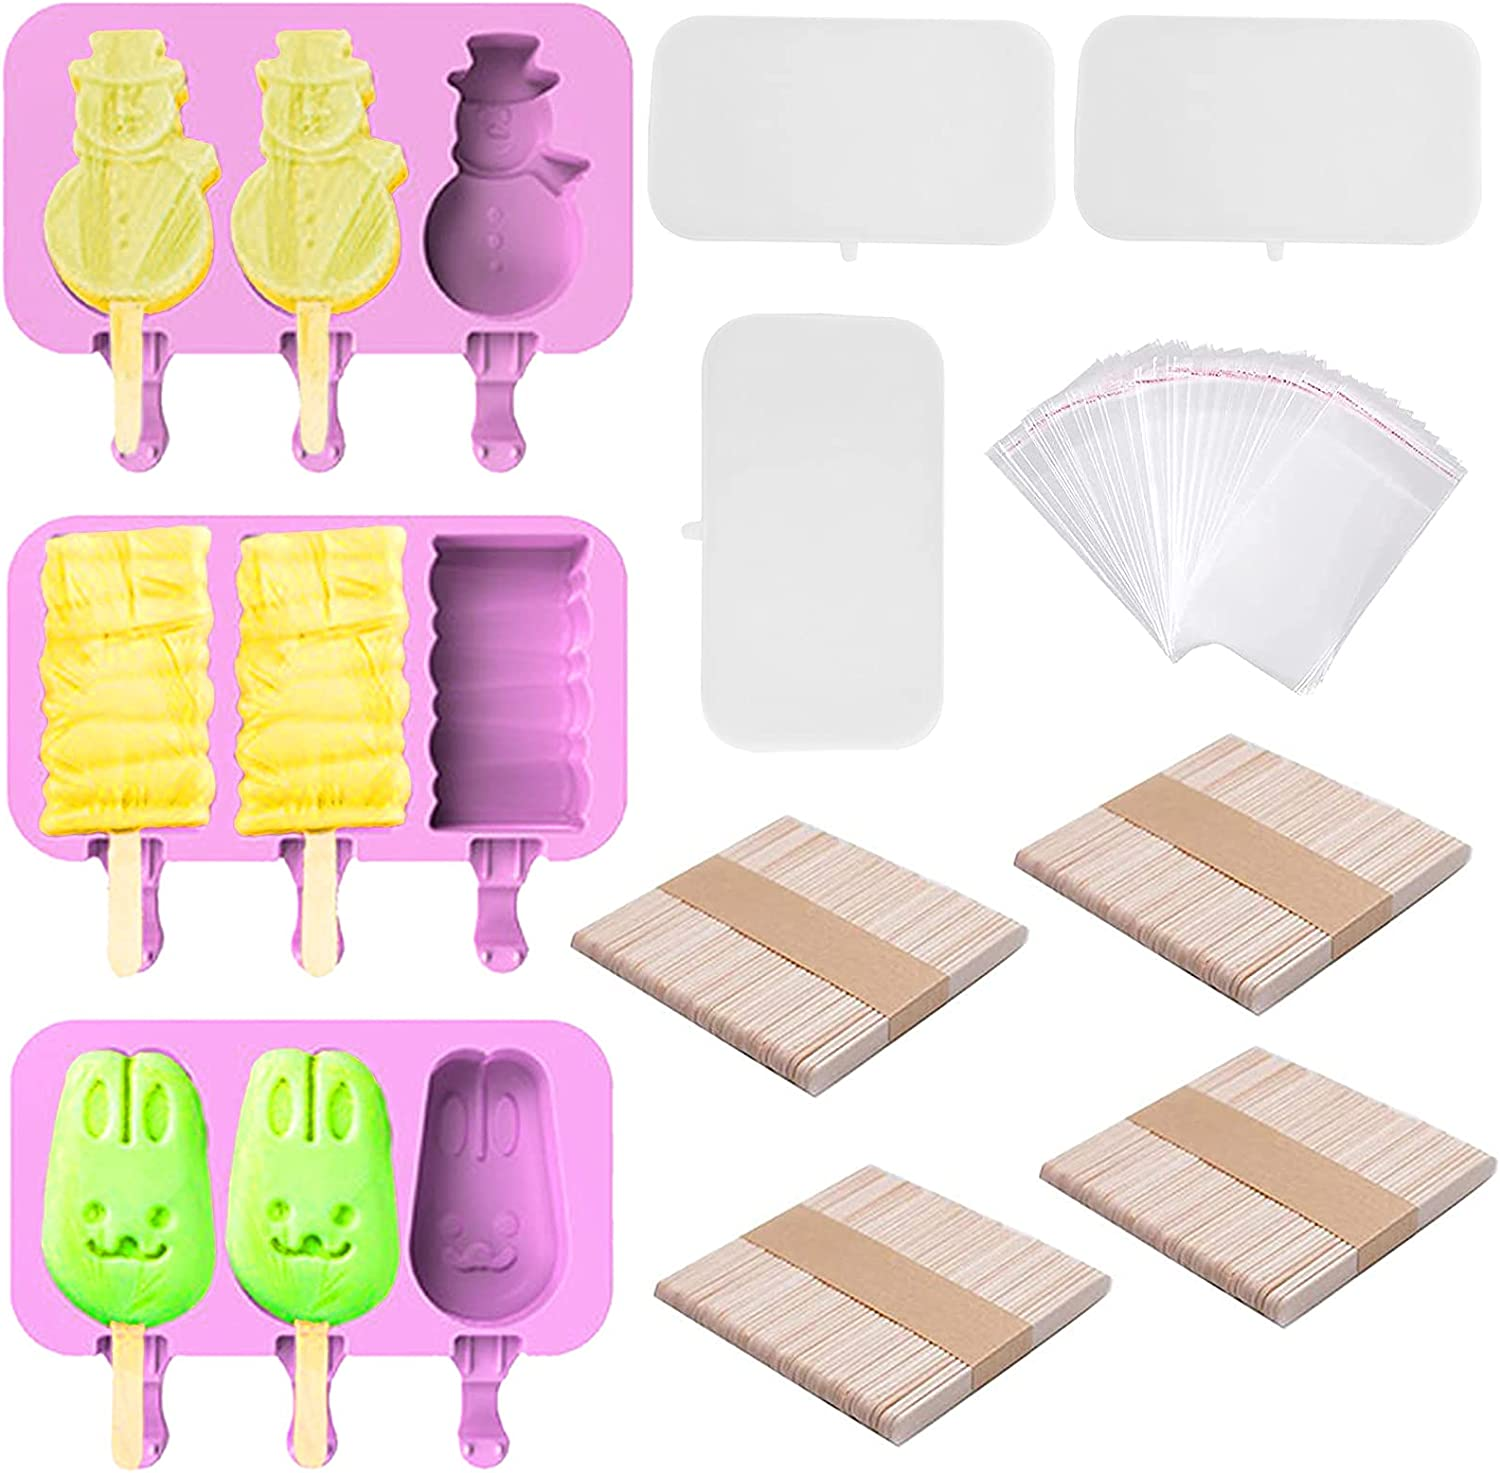 Popsicle Moluds Rapid rise Ice Cream Pop Molds Homemade Raleigh Mall Moulds